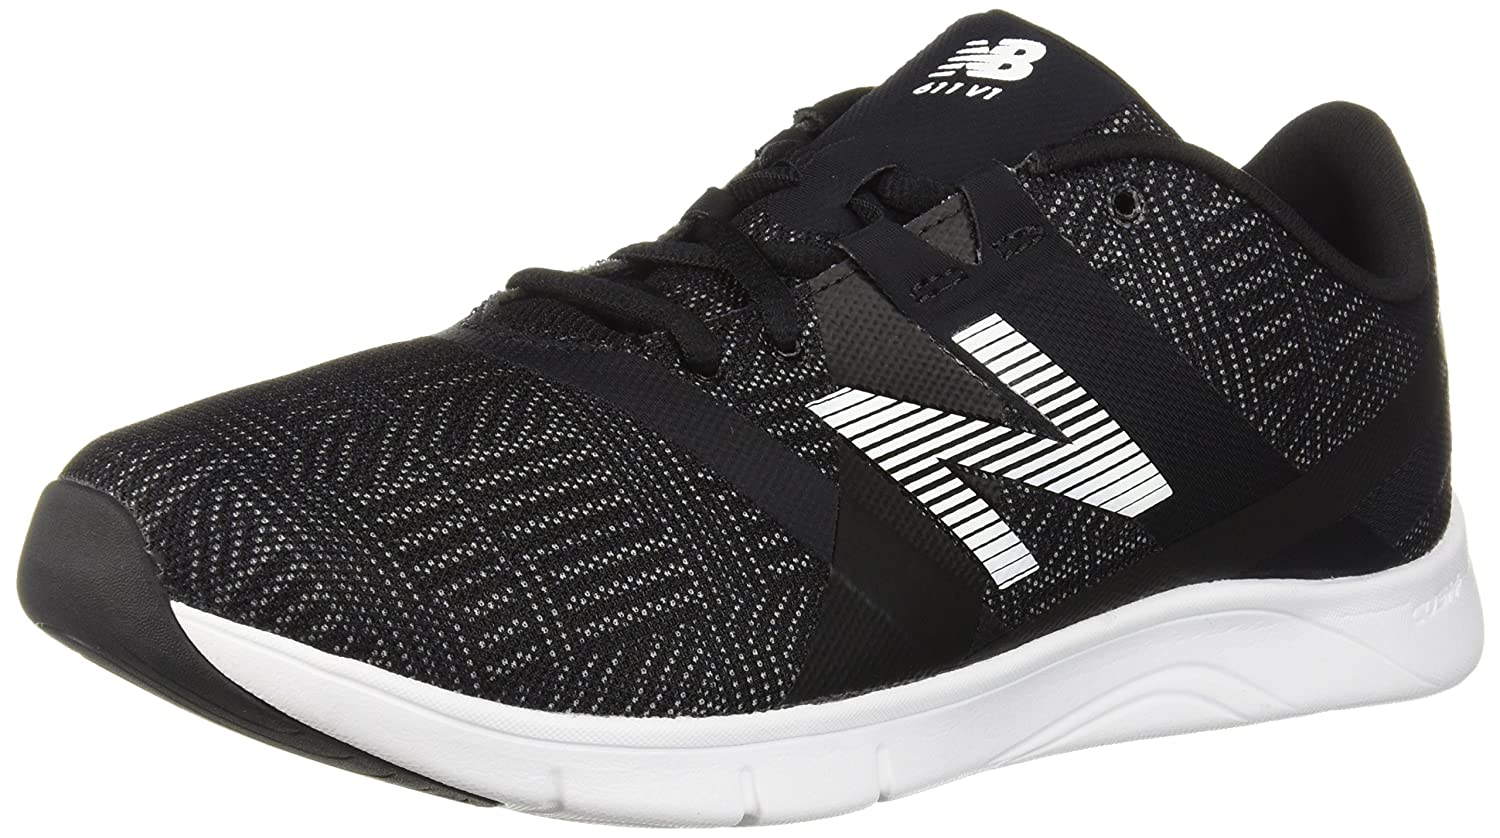 New Balance Women's 611v1 Cross Trainer B0751GPZ2Q 7.5 B(M) US|Black/White